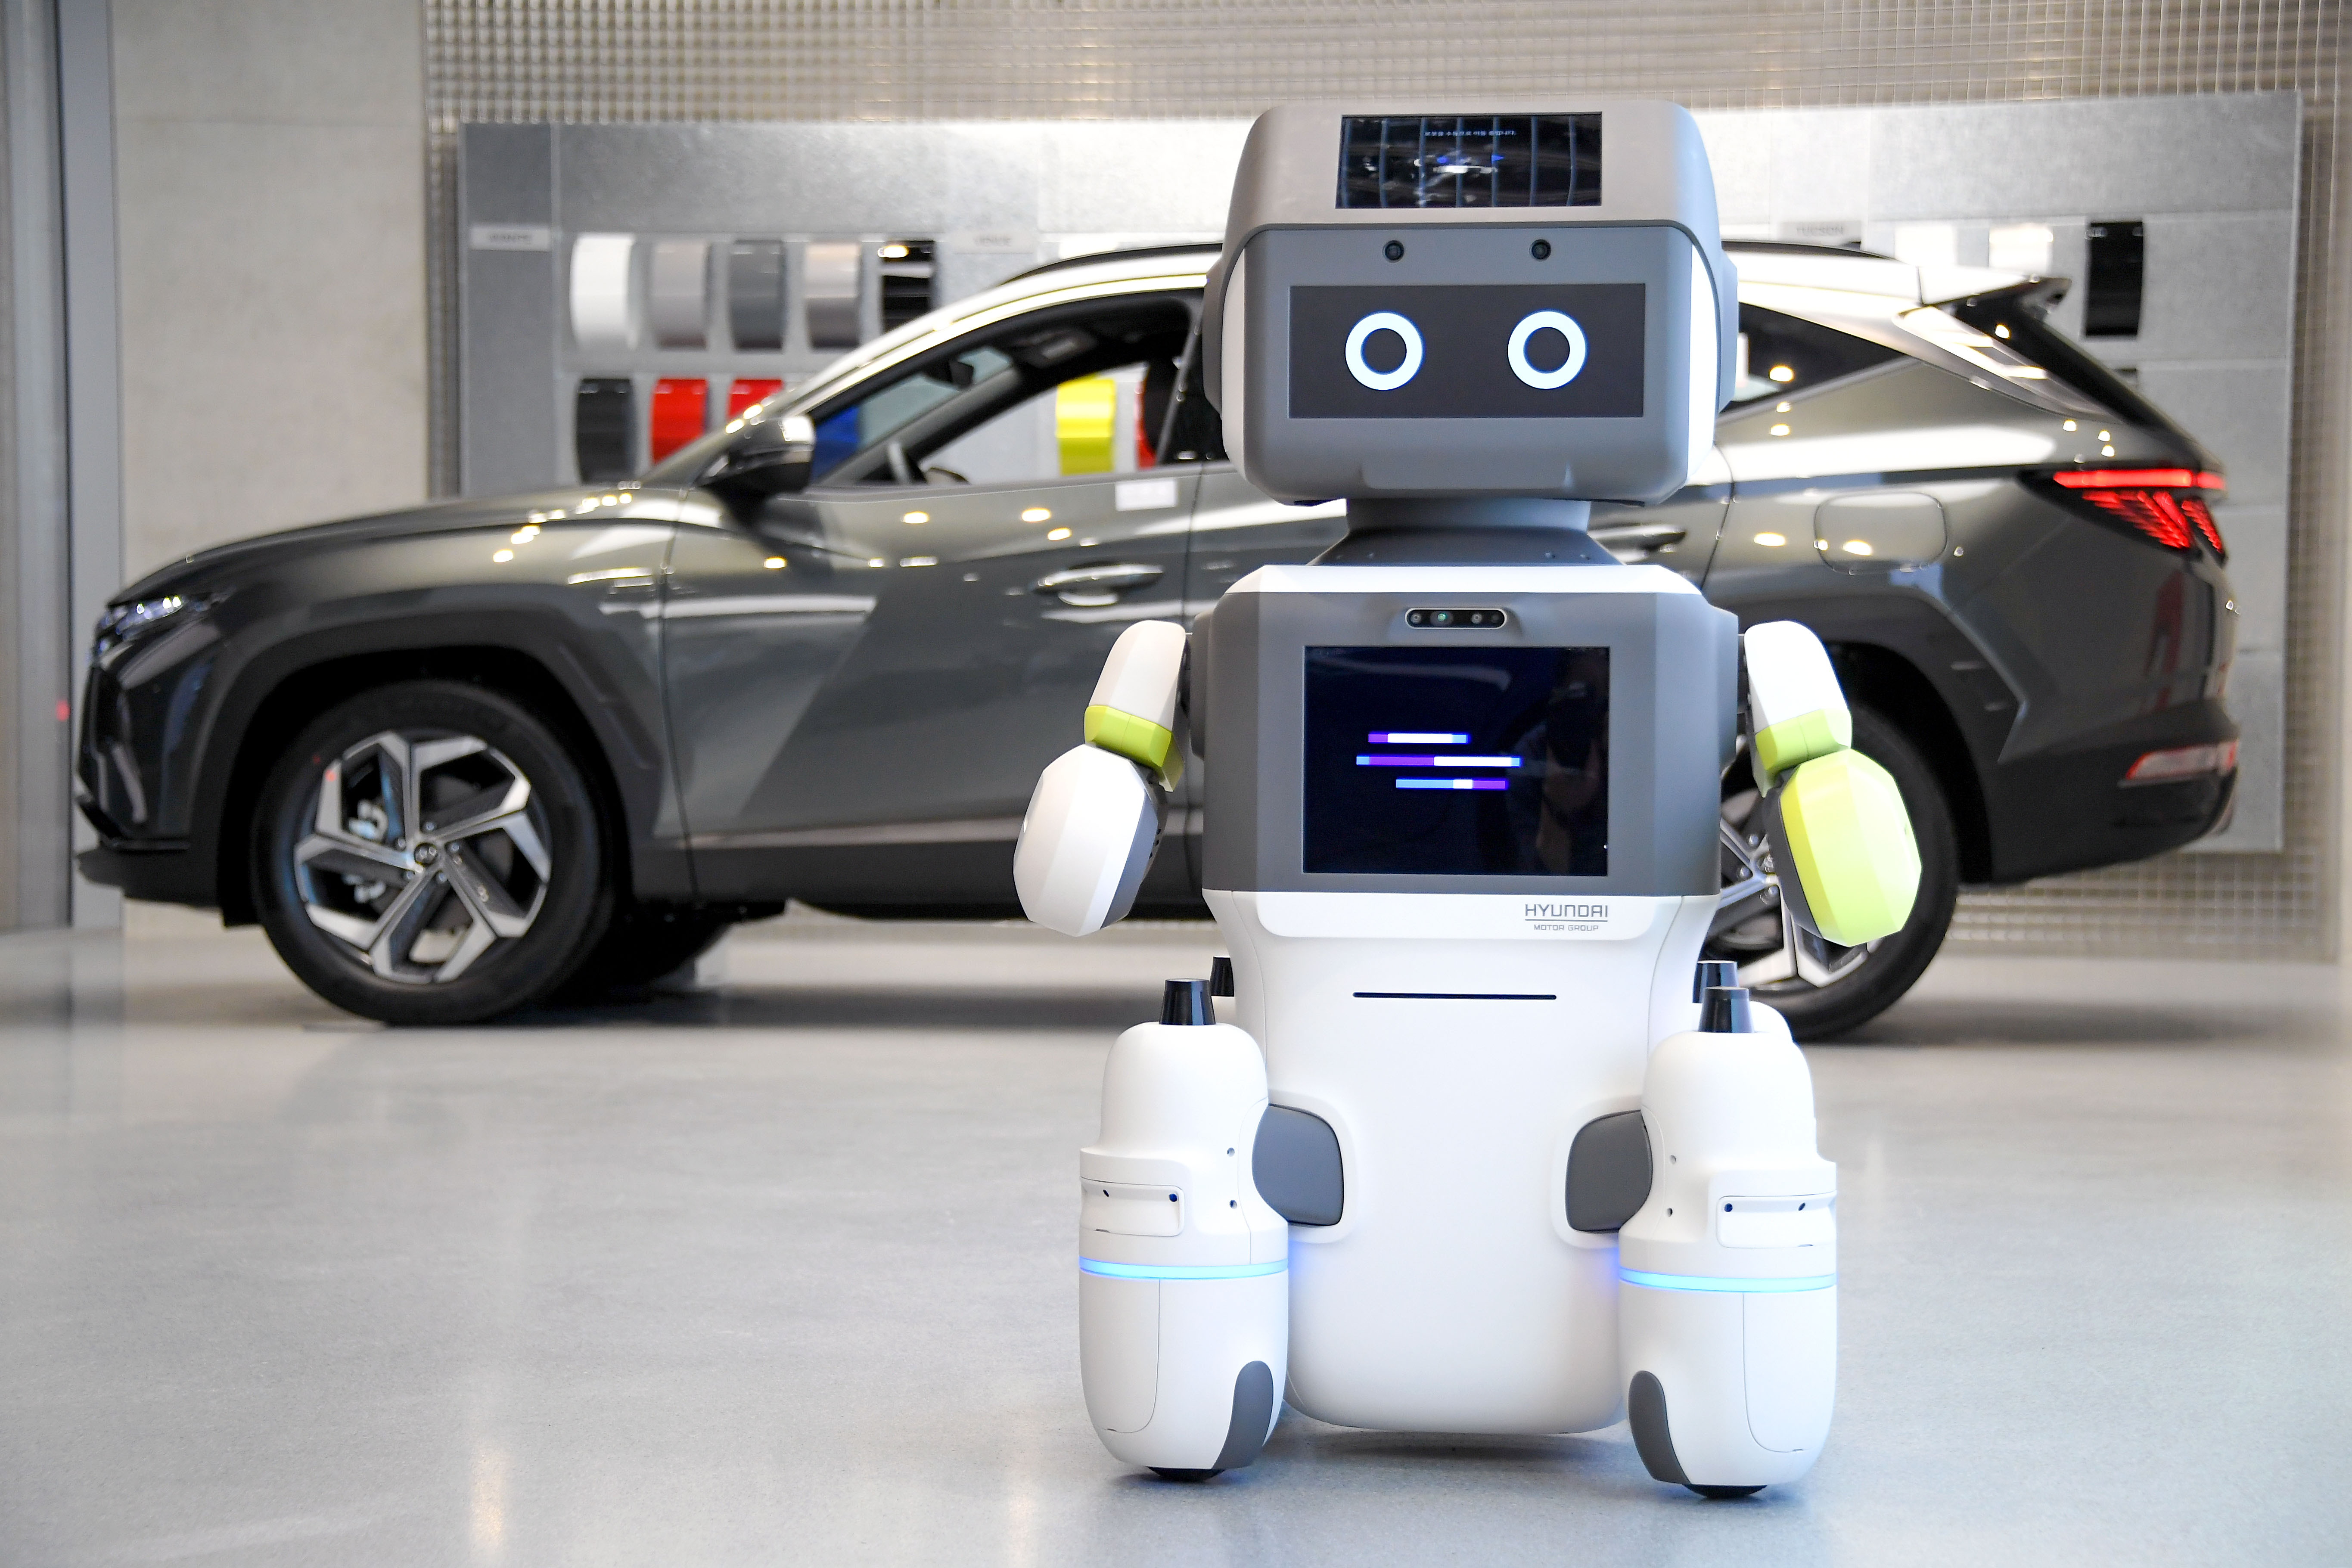 Hyundai Motor Group Introduces Advanced Humanoid Robot 'DAL-e' for Automated Customer Services